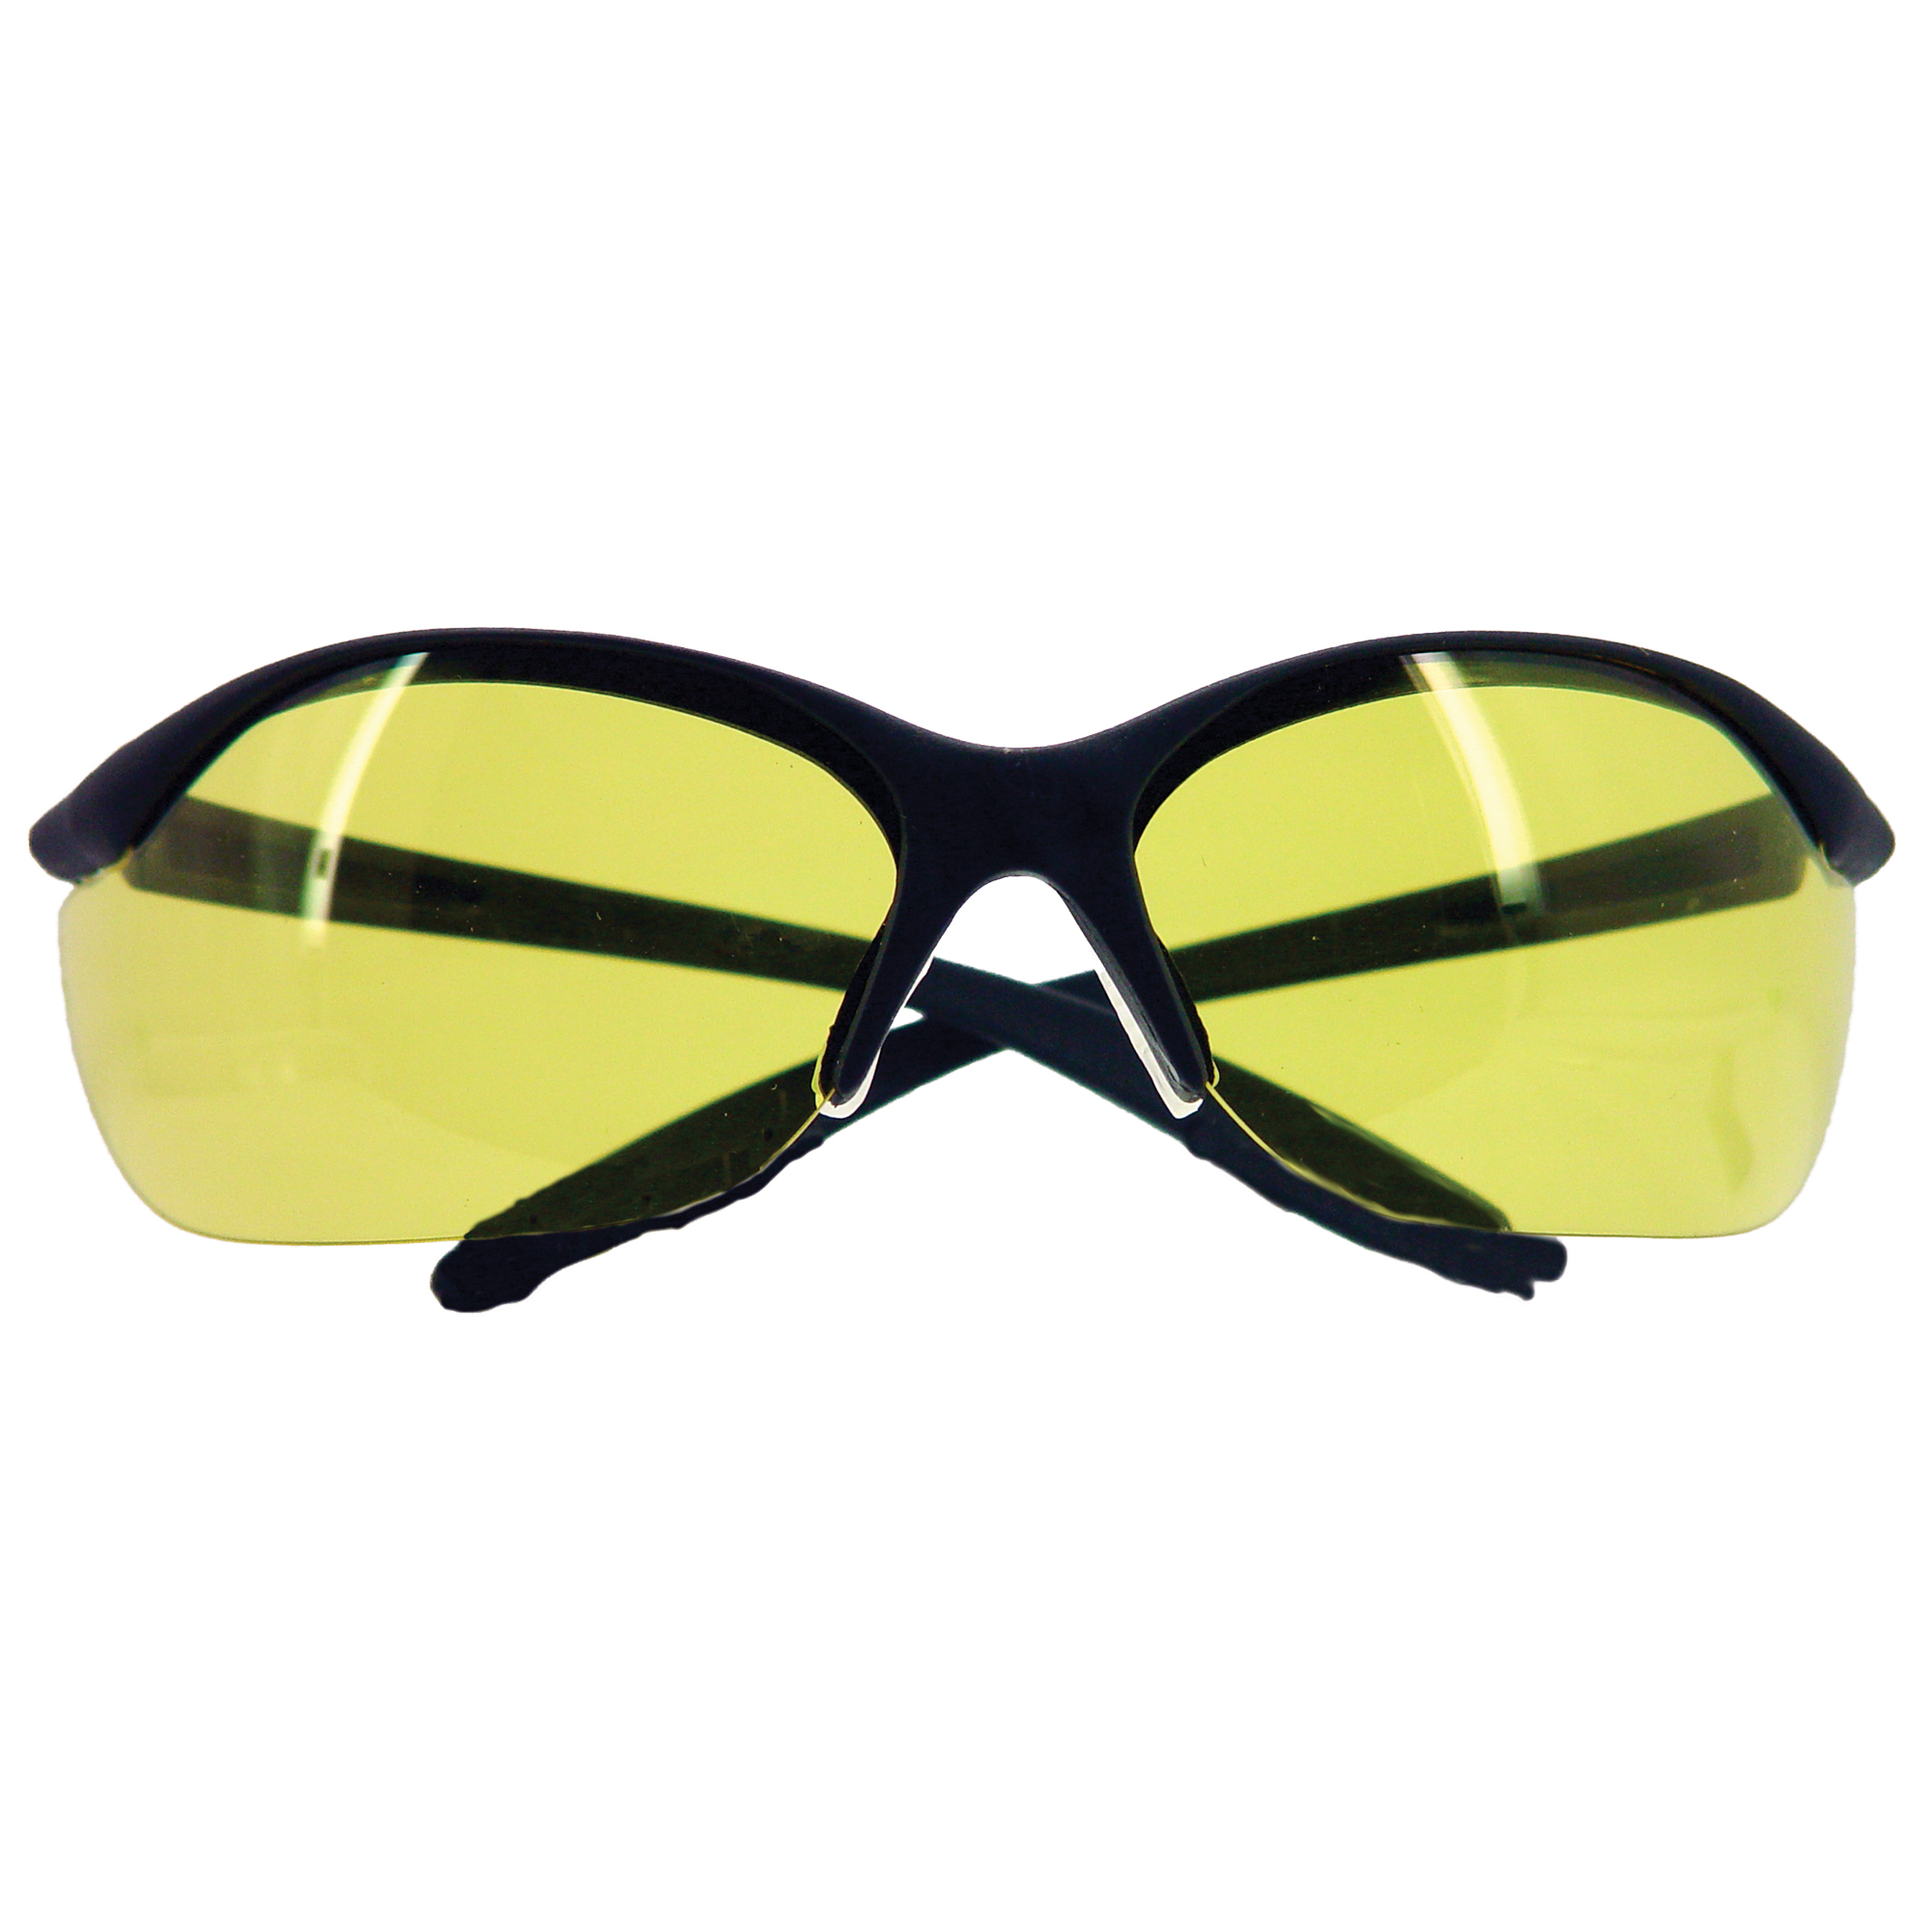 """Vapor II Safety Eyewear features an optical grade"""" 9-base wraparound lens that provides 180 degree field of vision. An ideal addition for most indoor or outdoor shooting environments"""" this selection of Safety Eyewear includes Anti-Fog lenses that minimize fogging."""